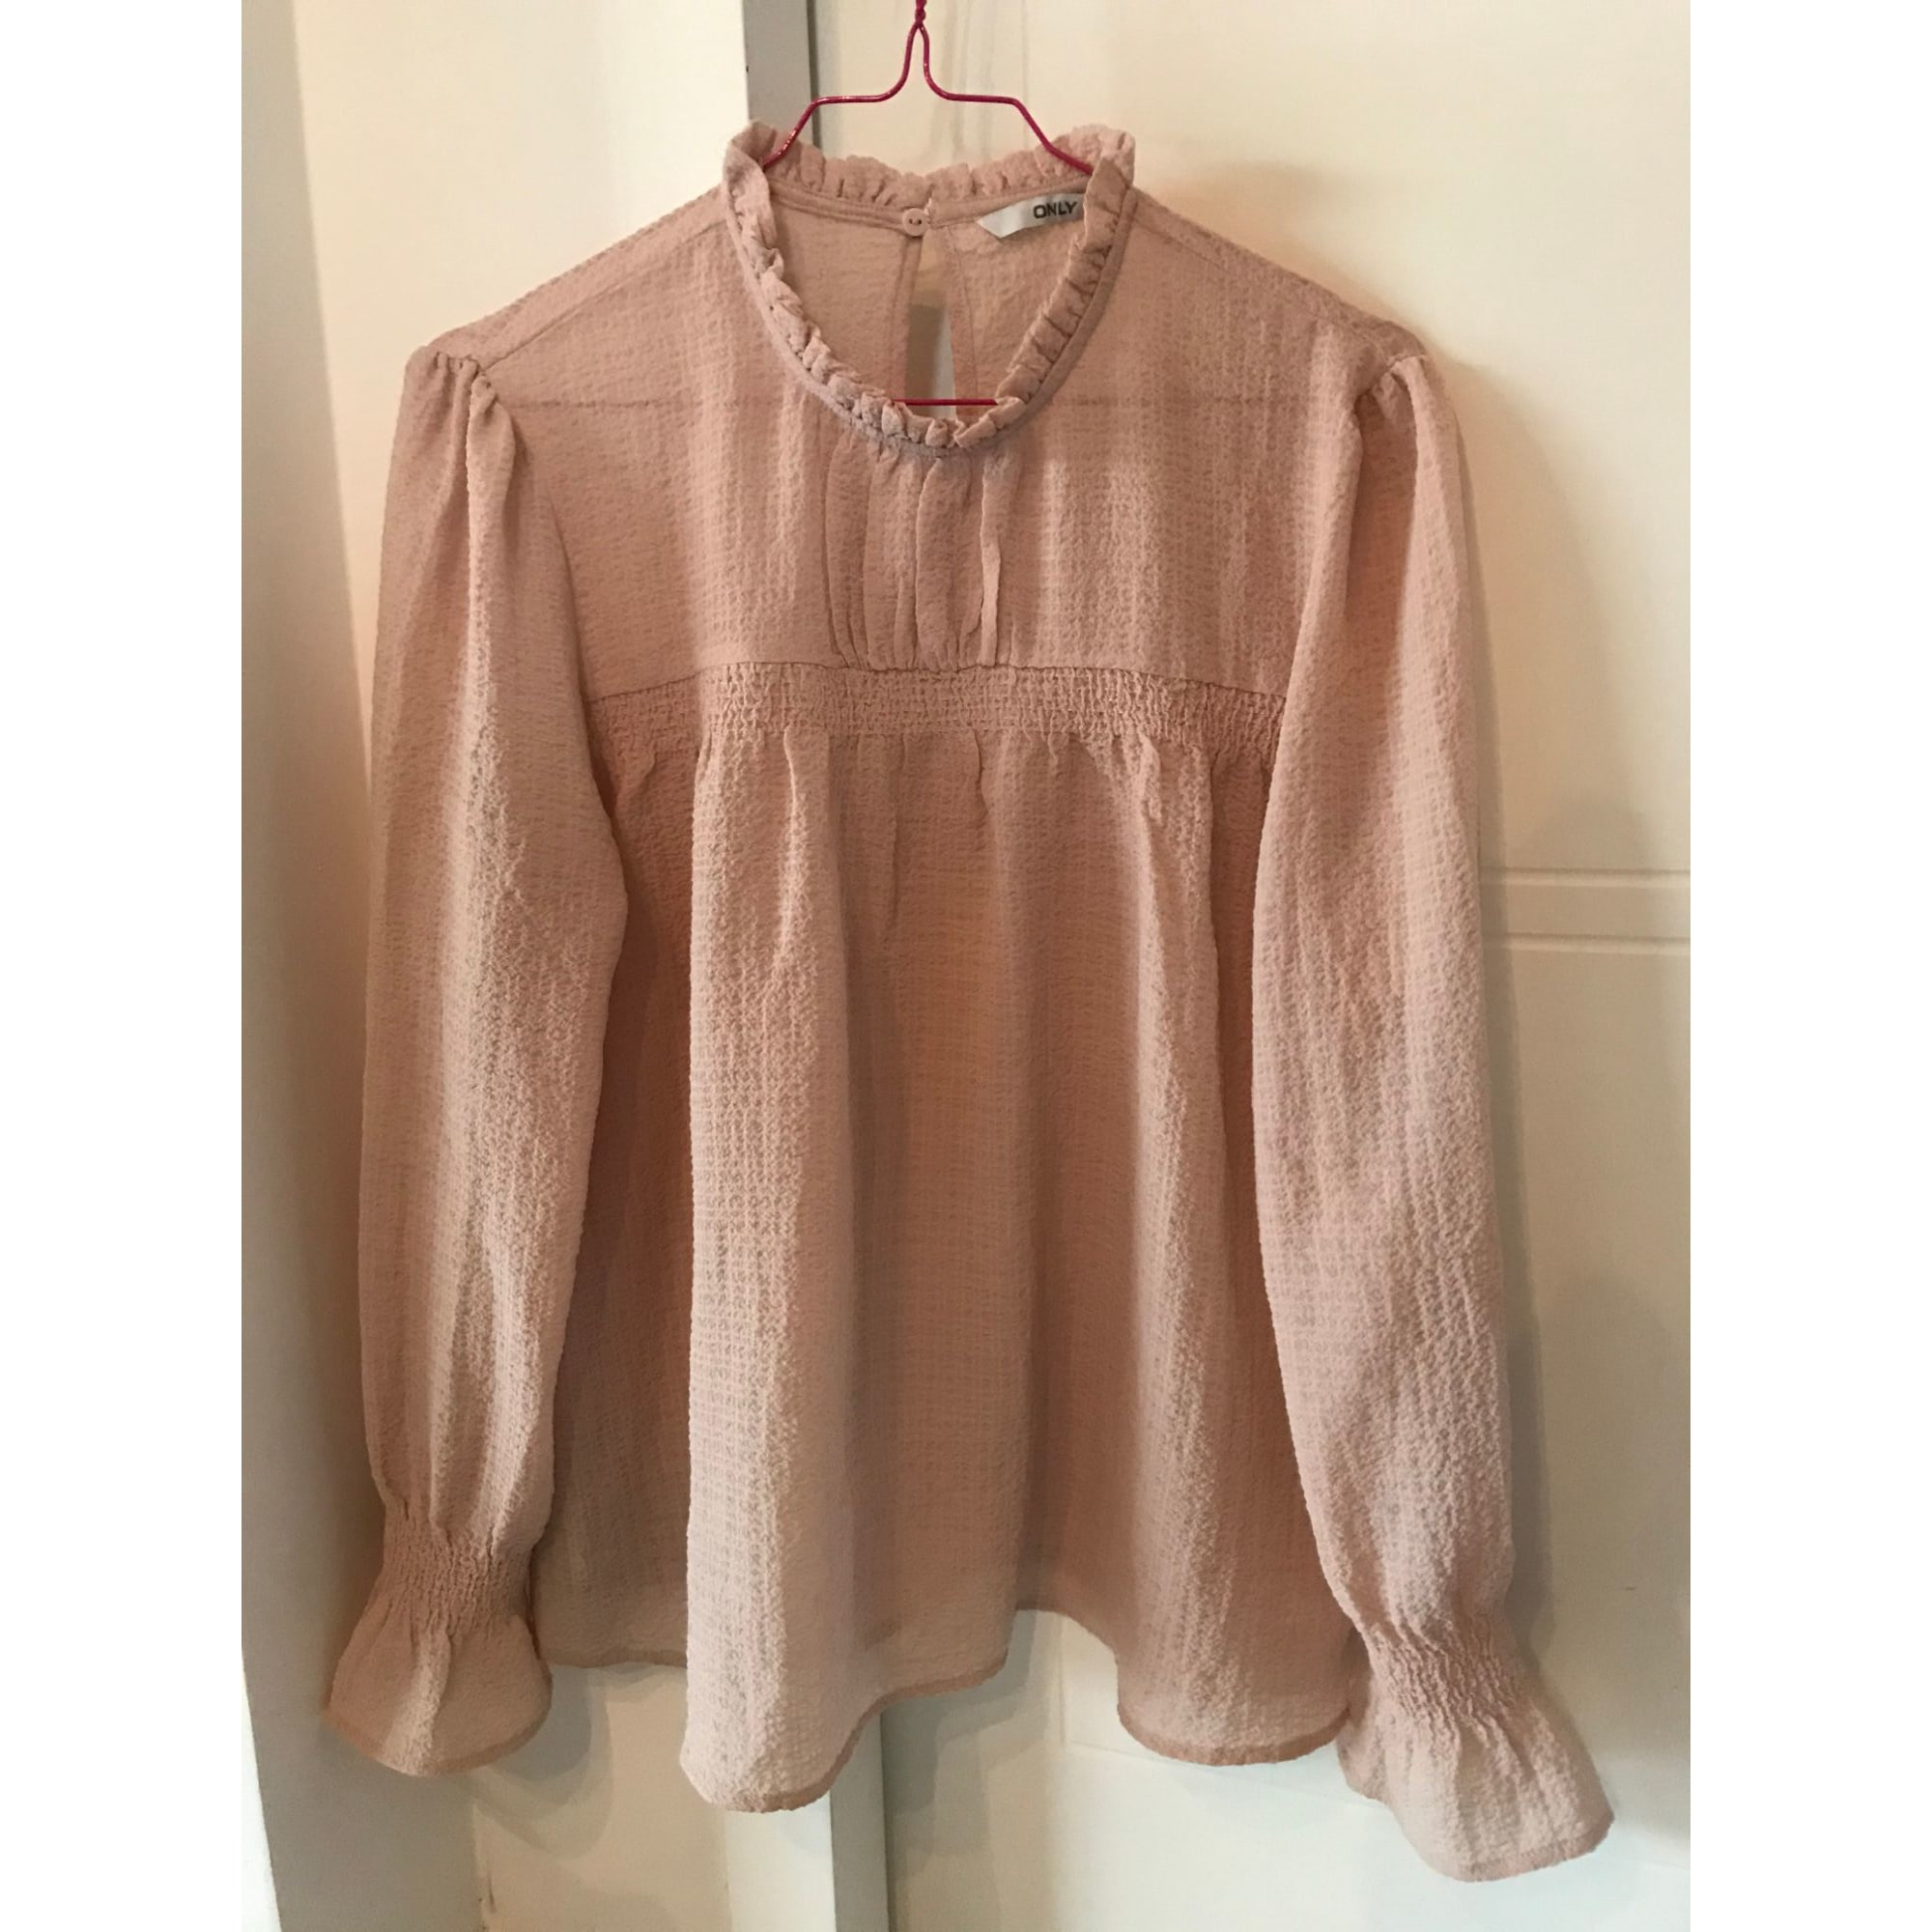 Blouse ONLY Rose, fuschia, vieux rose